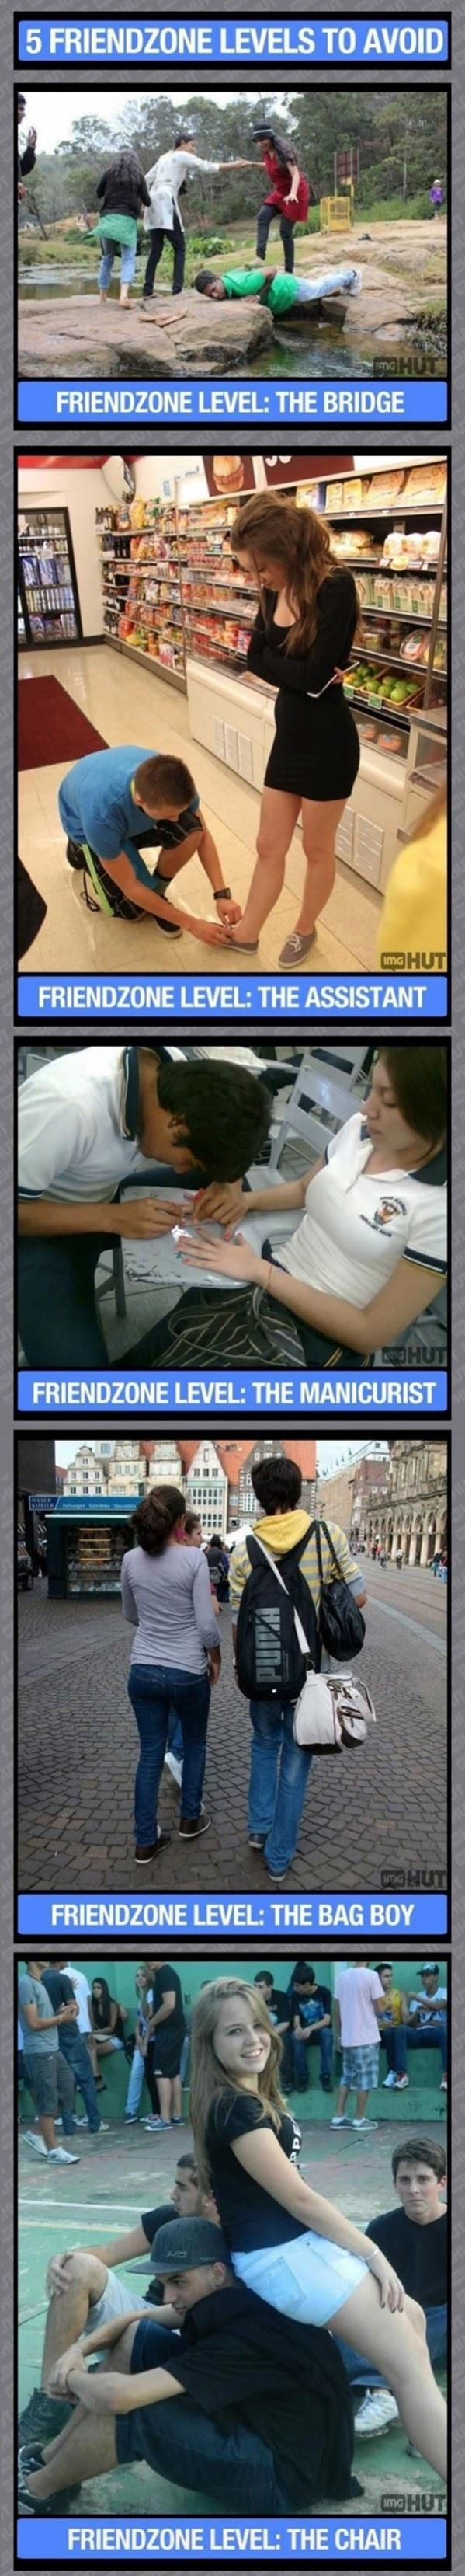 Avoid These Friendzone Levels